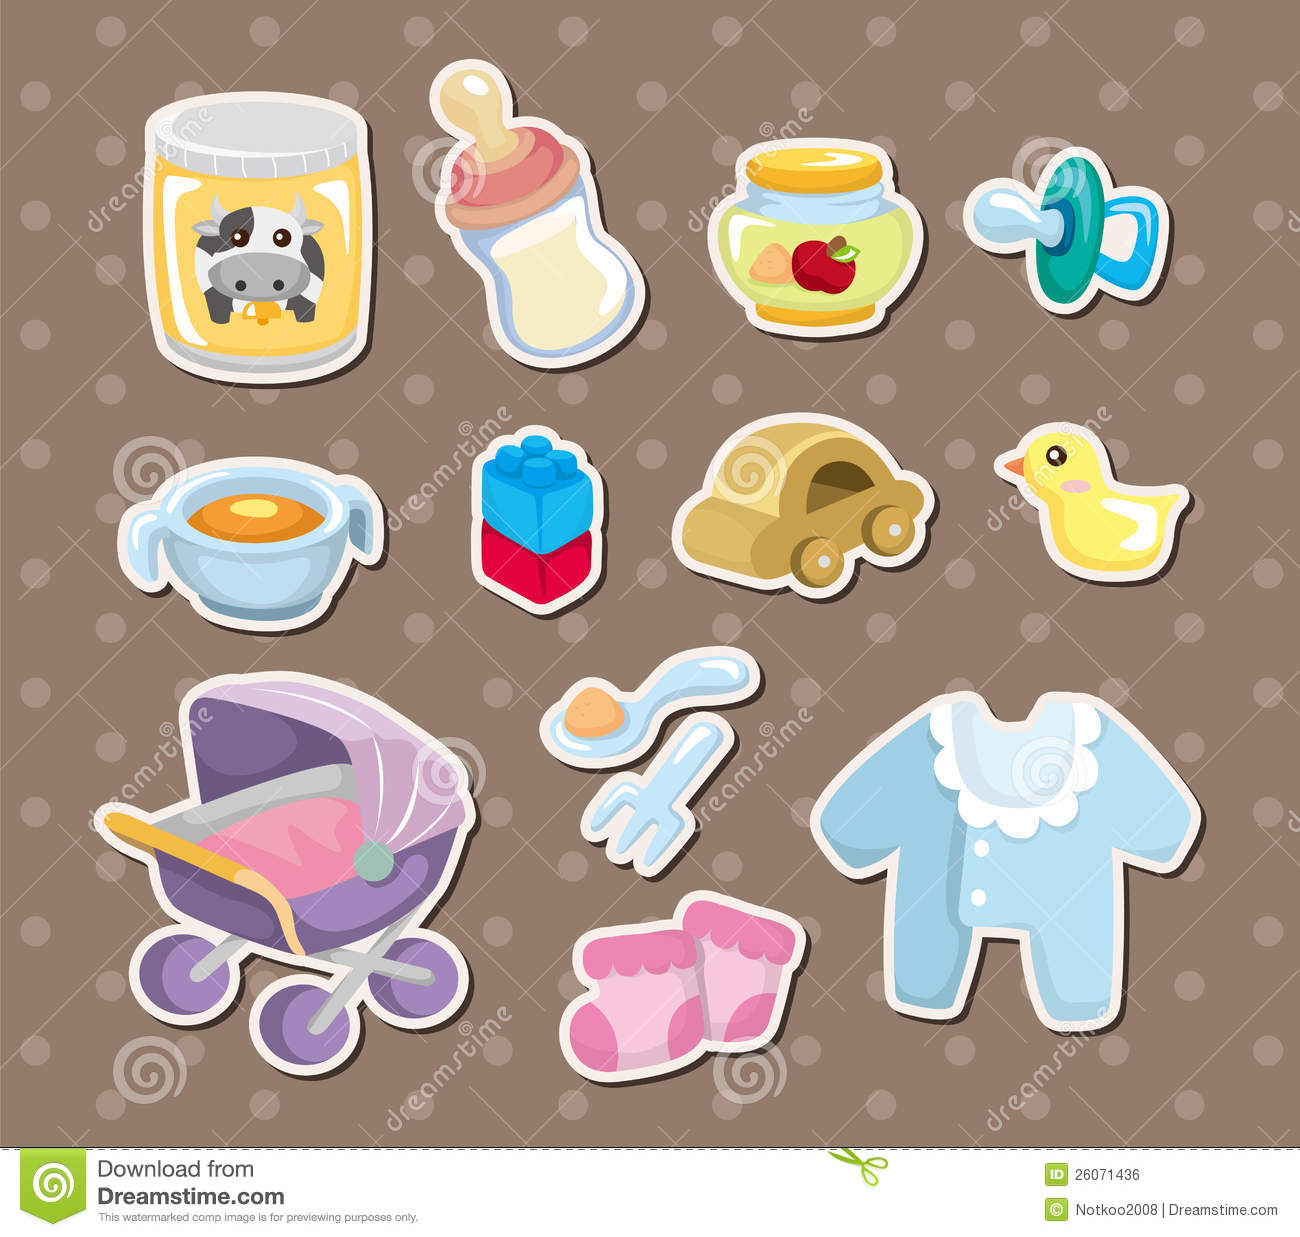 Baby Stuff Stickers Stock Vector Illustration Of Happiness 26071436